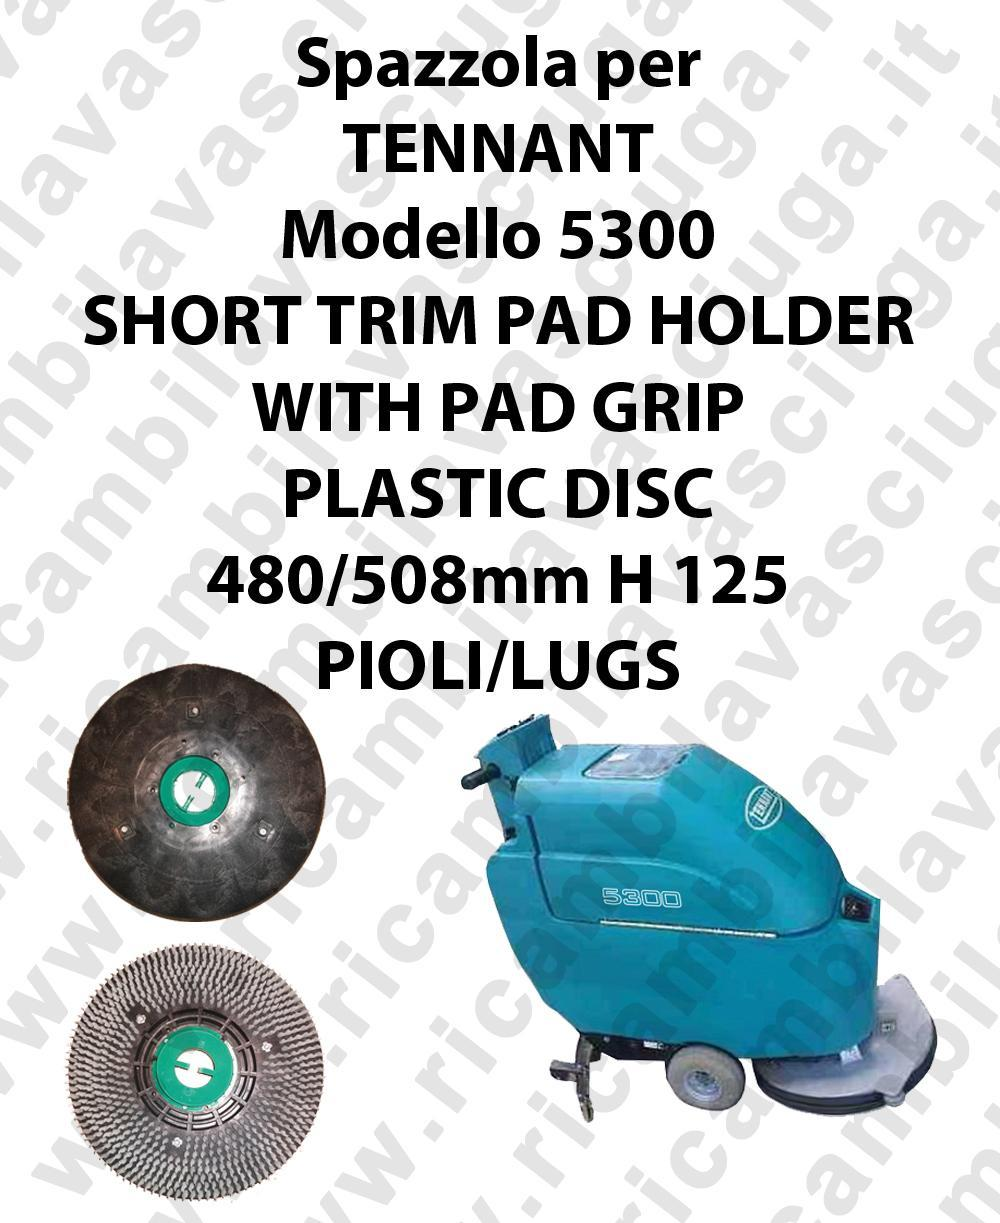 SHORT TRIM PAD HOLDER WITH PAD GRIP pour autolaveuses TENNANT mod 5300